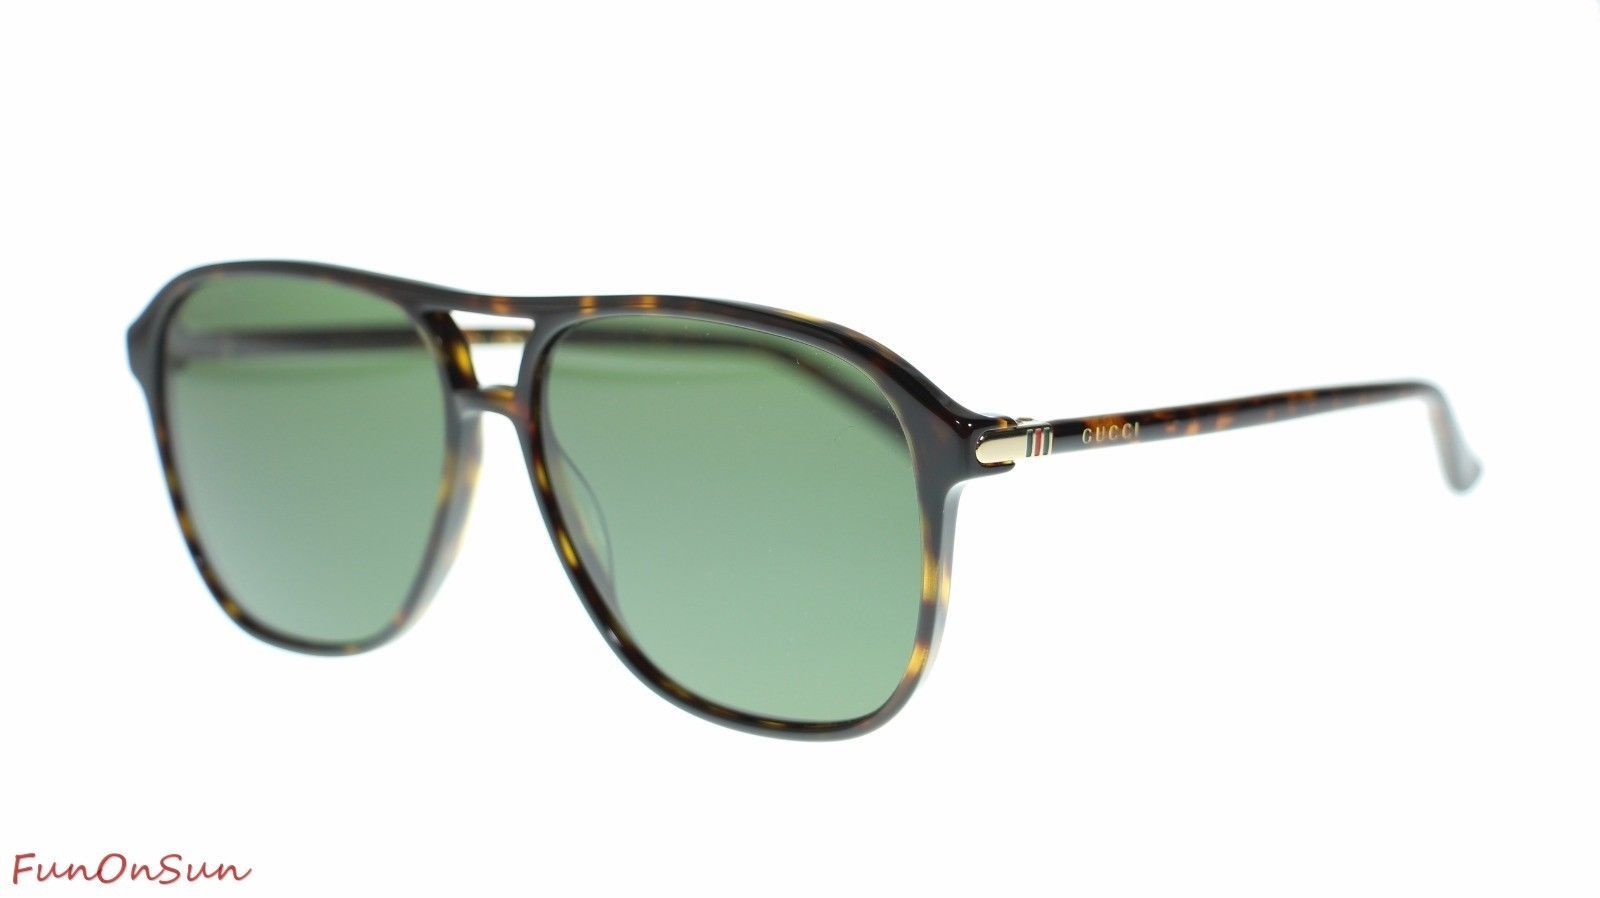 Gucci Men's Aviator Sunglasses GG0016S 007 Havana/Green Lens Authentic 58mm